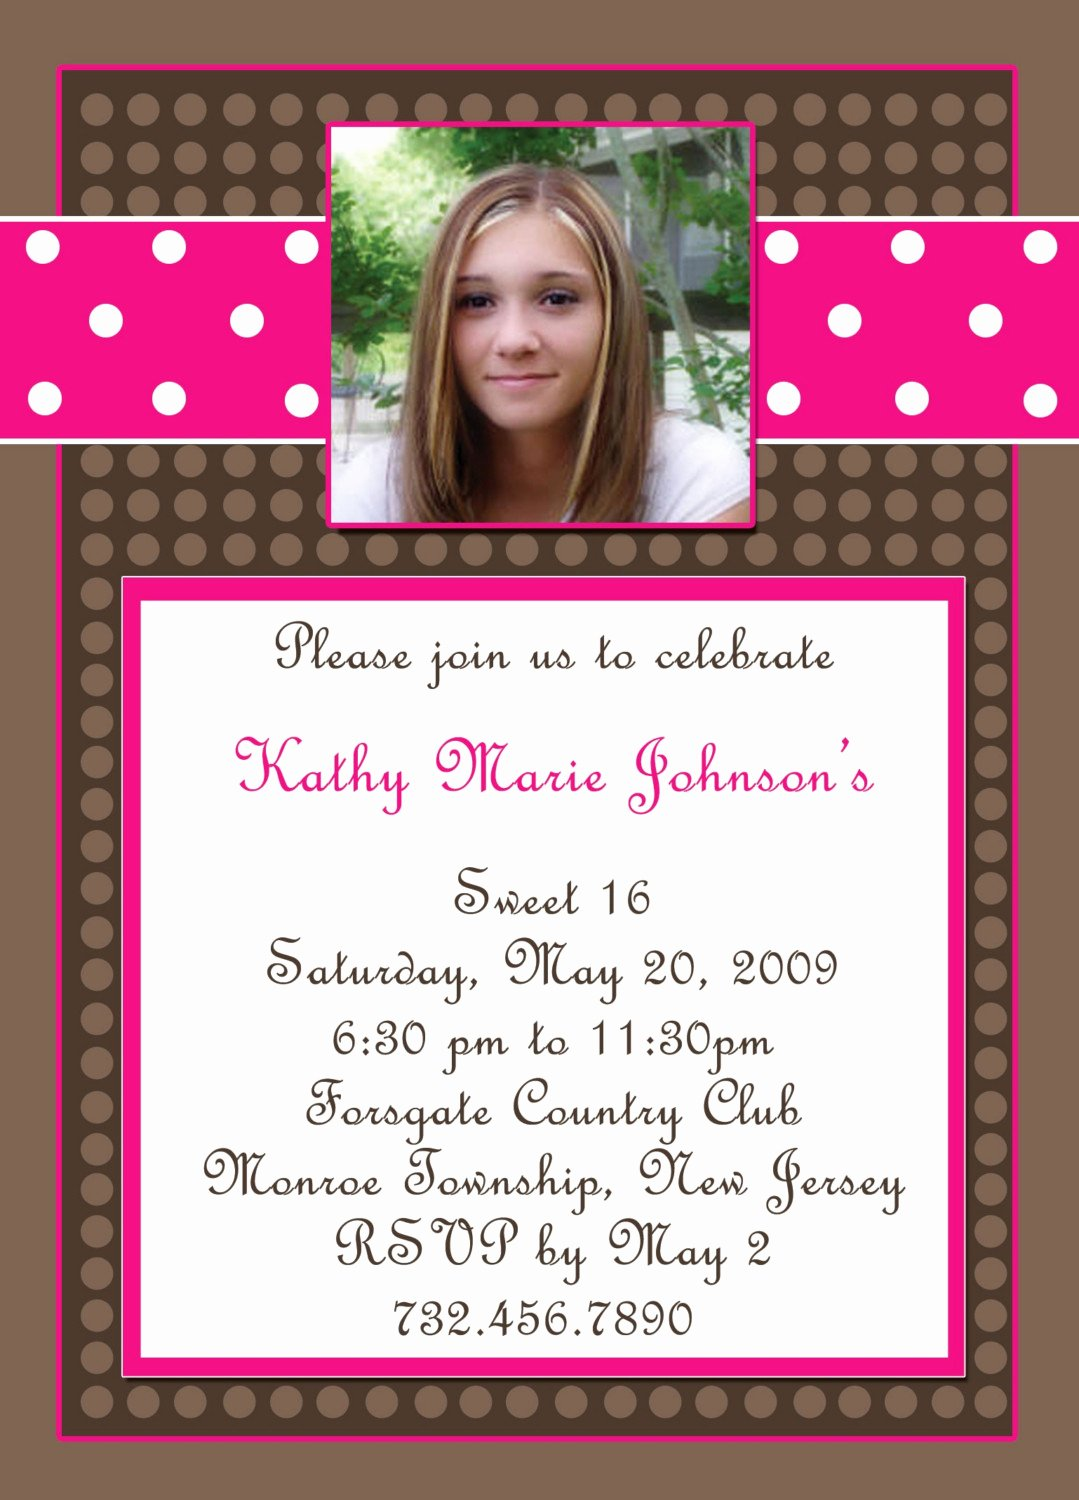 Sweet 16 Invitation Template Elegant Sweet 16 Party Invitations Templates